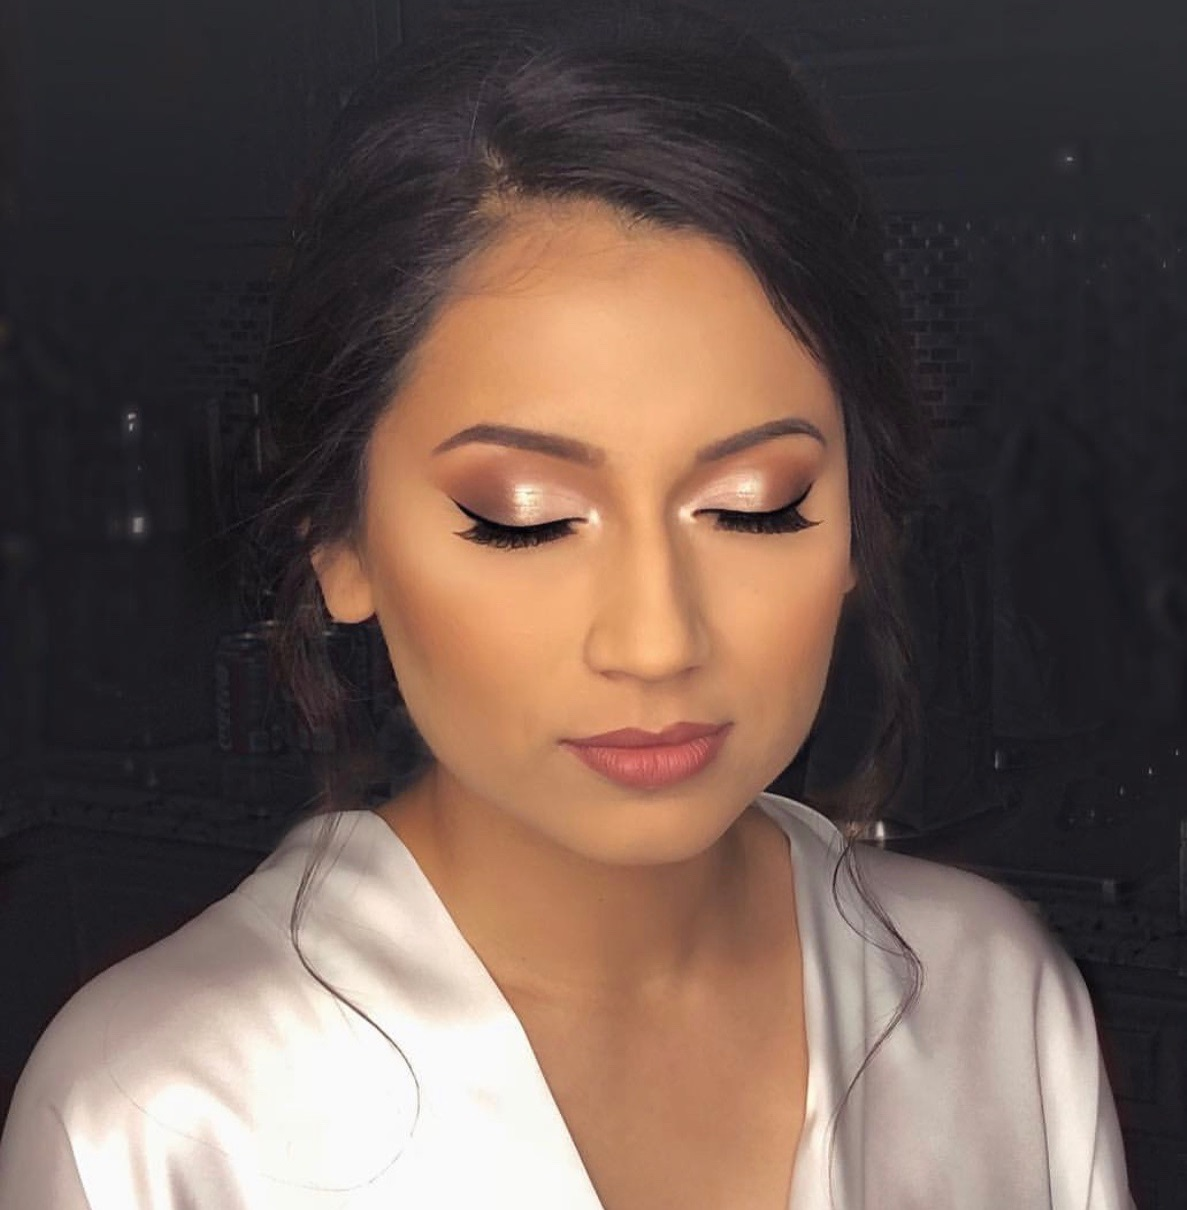 """""""I loved my makeup! Thank you!! 😍"""" - Elsie Shawn"""